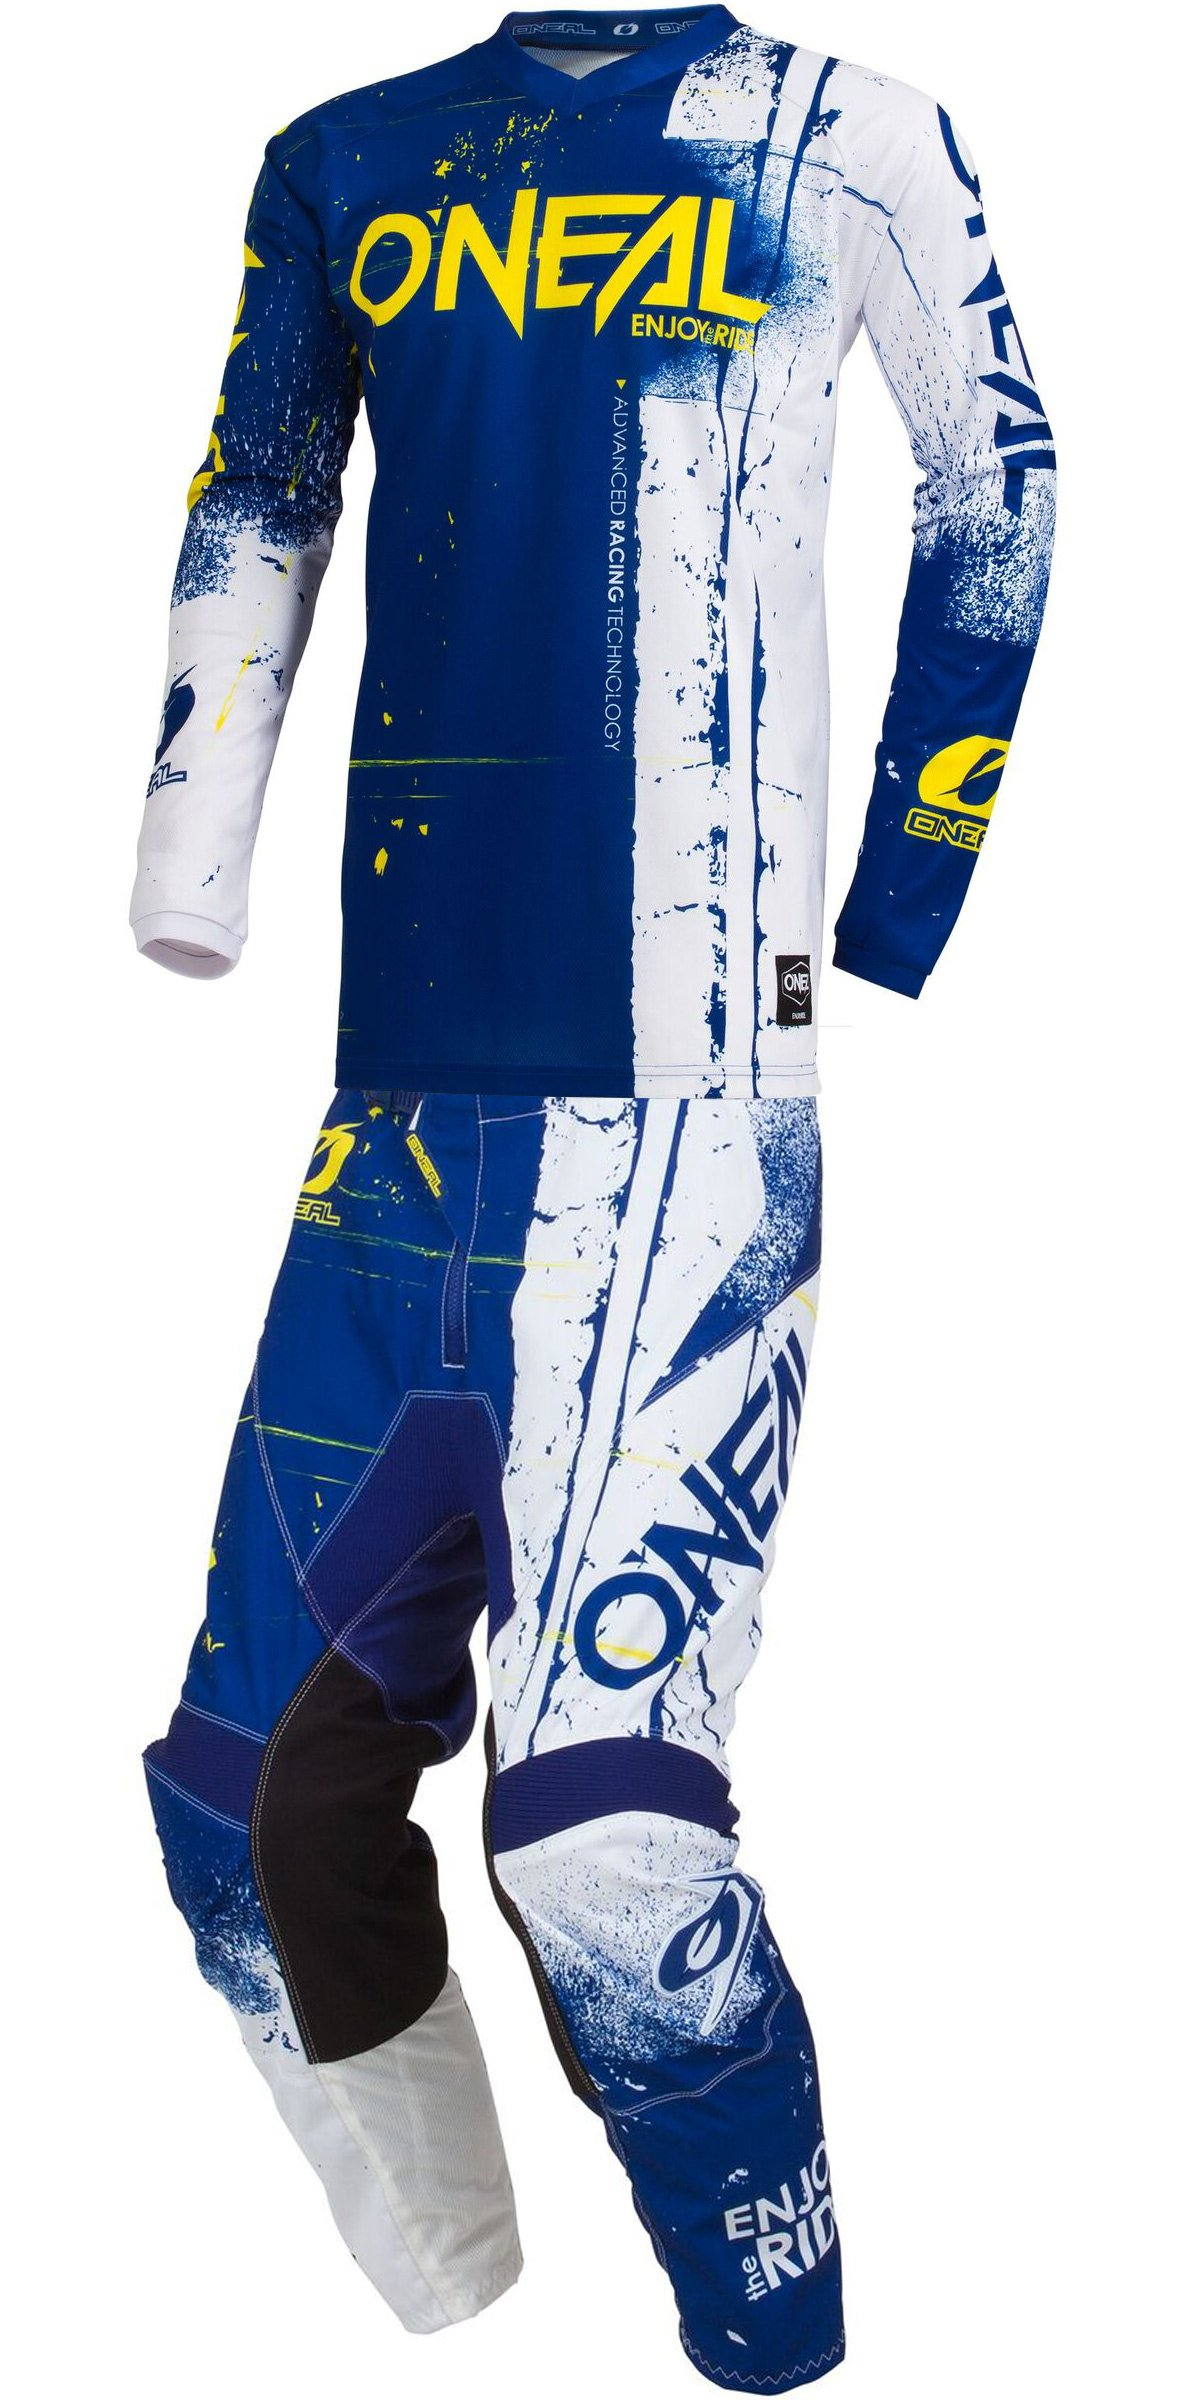 O'Neal 2019 Element Shred (Mens Blue Large/34W) MX Riding Gear Combo Set, Motocross Off-Road Dirt Bike Jersey & Pant